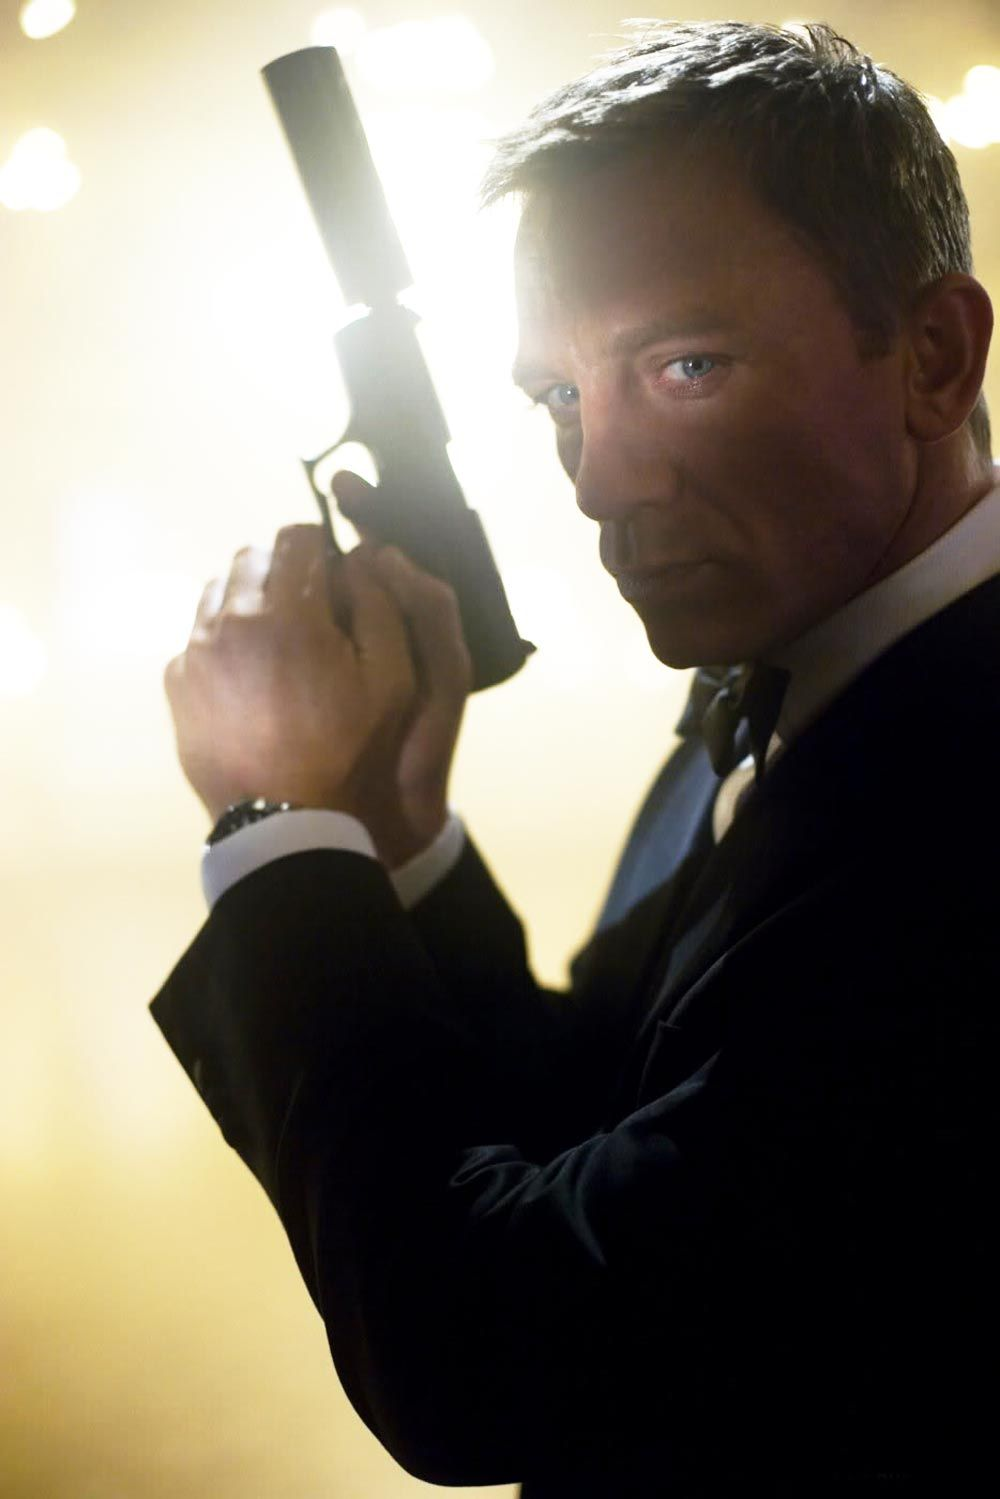 JAMES BOND 23 Officially Titled SKYFALL; New Details ...